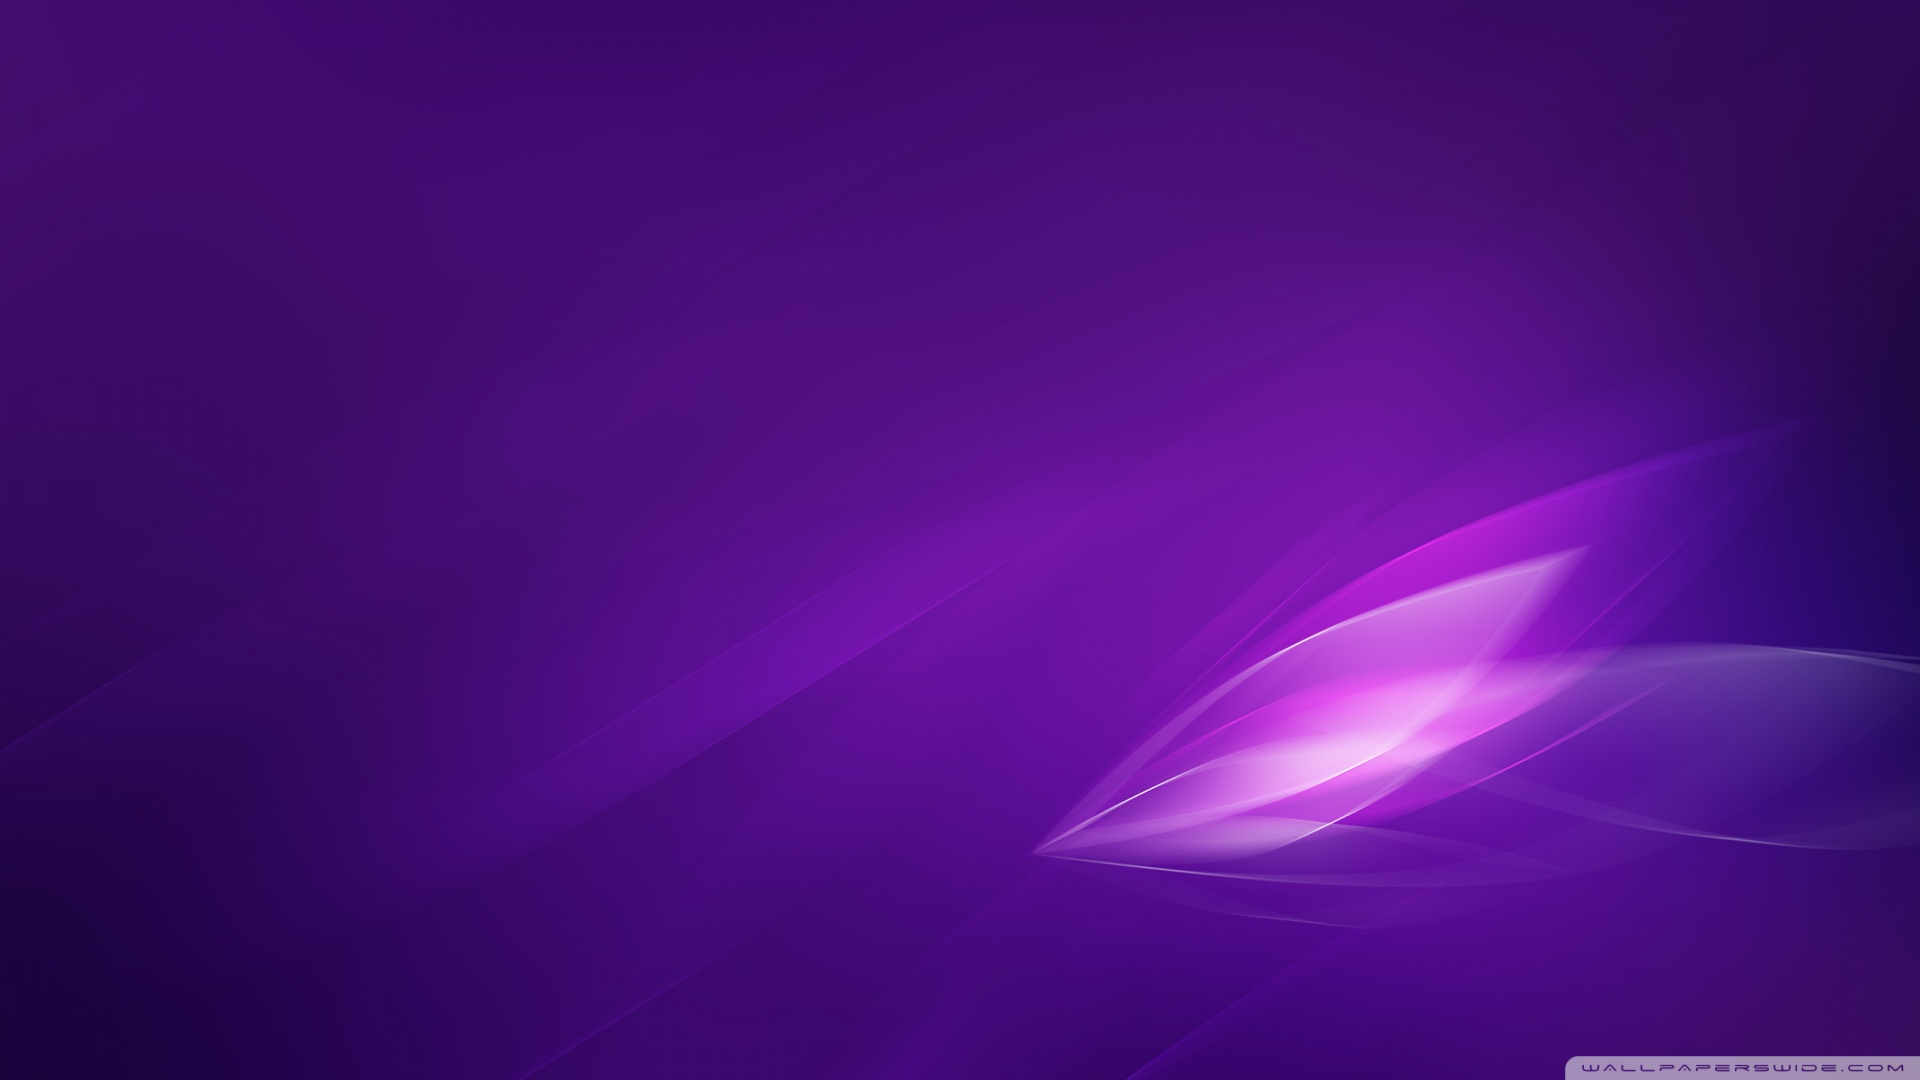 lavender color wallpaper hd - photo #7